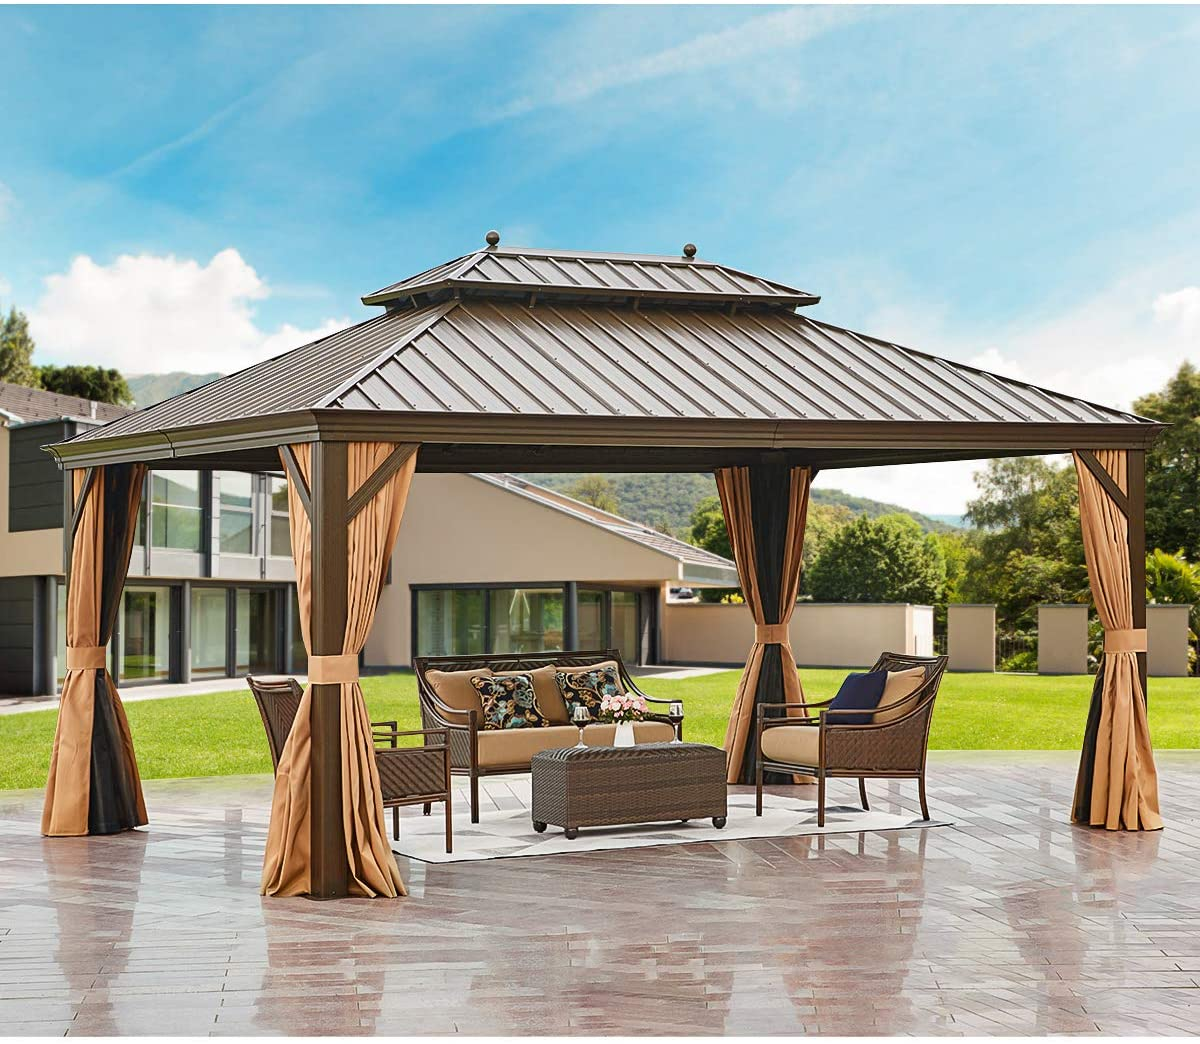 erommy 12 x 16 hardtop gazebo galvanized steel outdoor gazebo canopy double vented roof pergolas aluminum frame with netting and curtains for